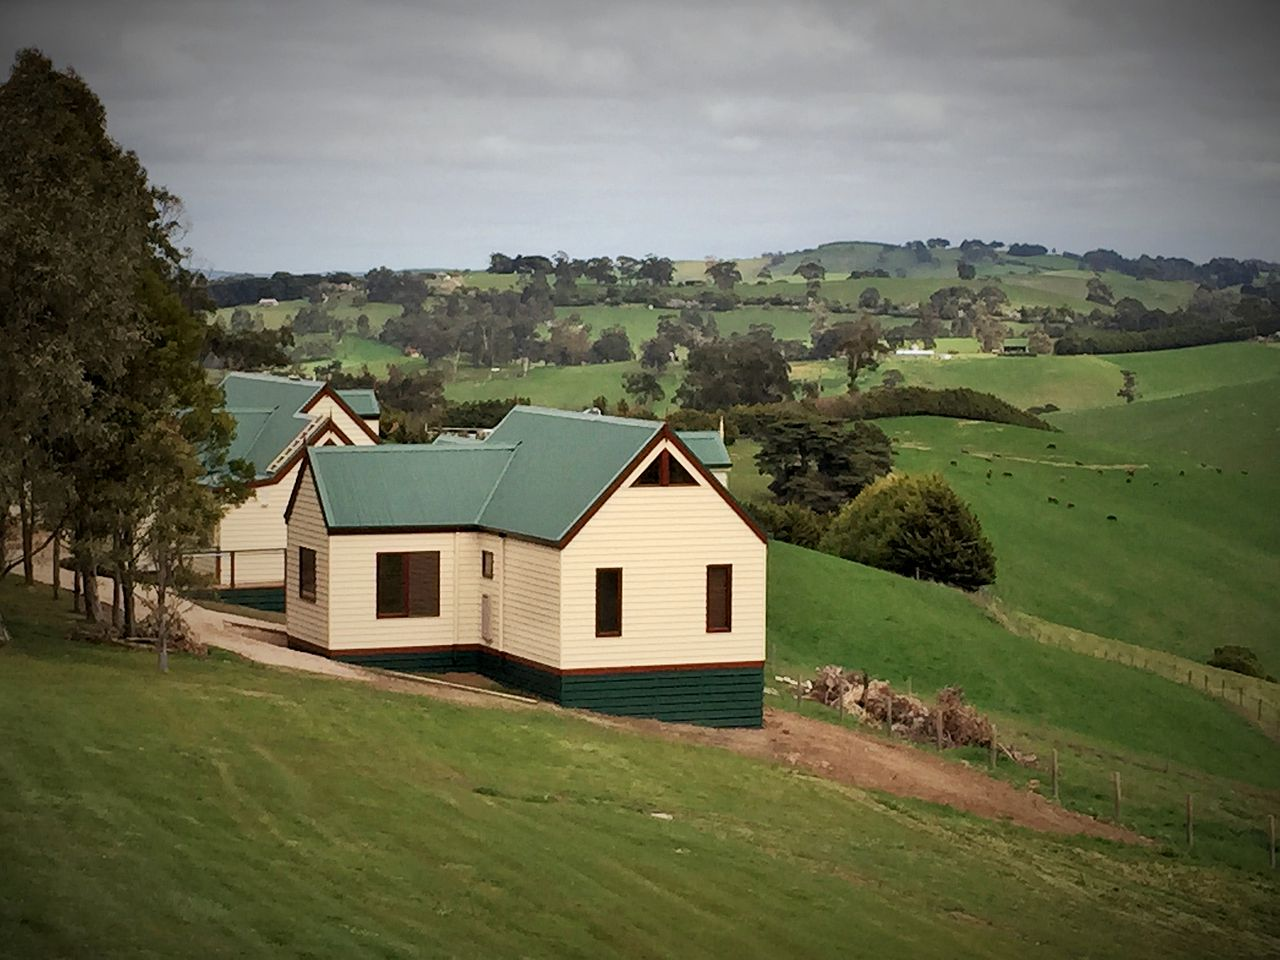 Cottages (Dumbalk, Victoria, Australia)